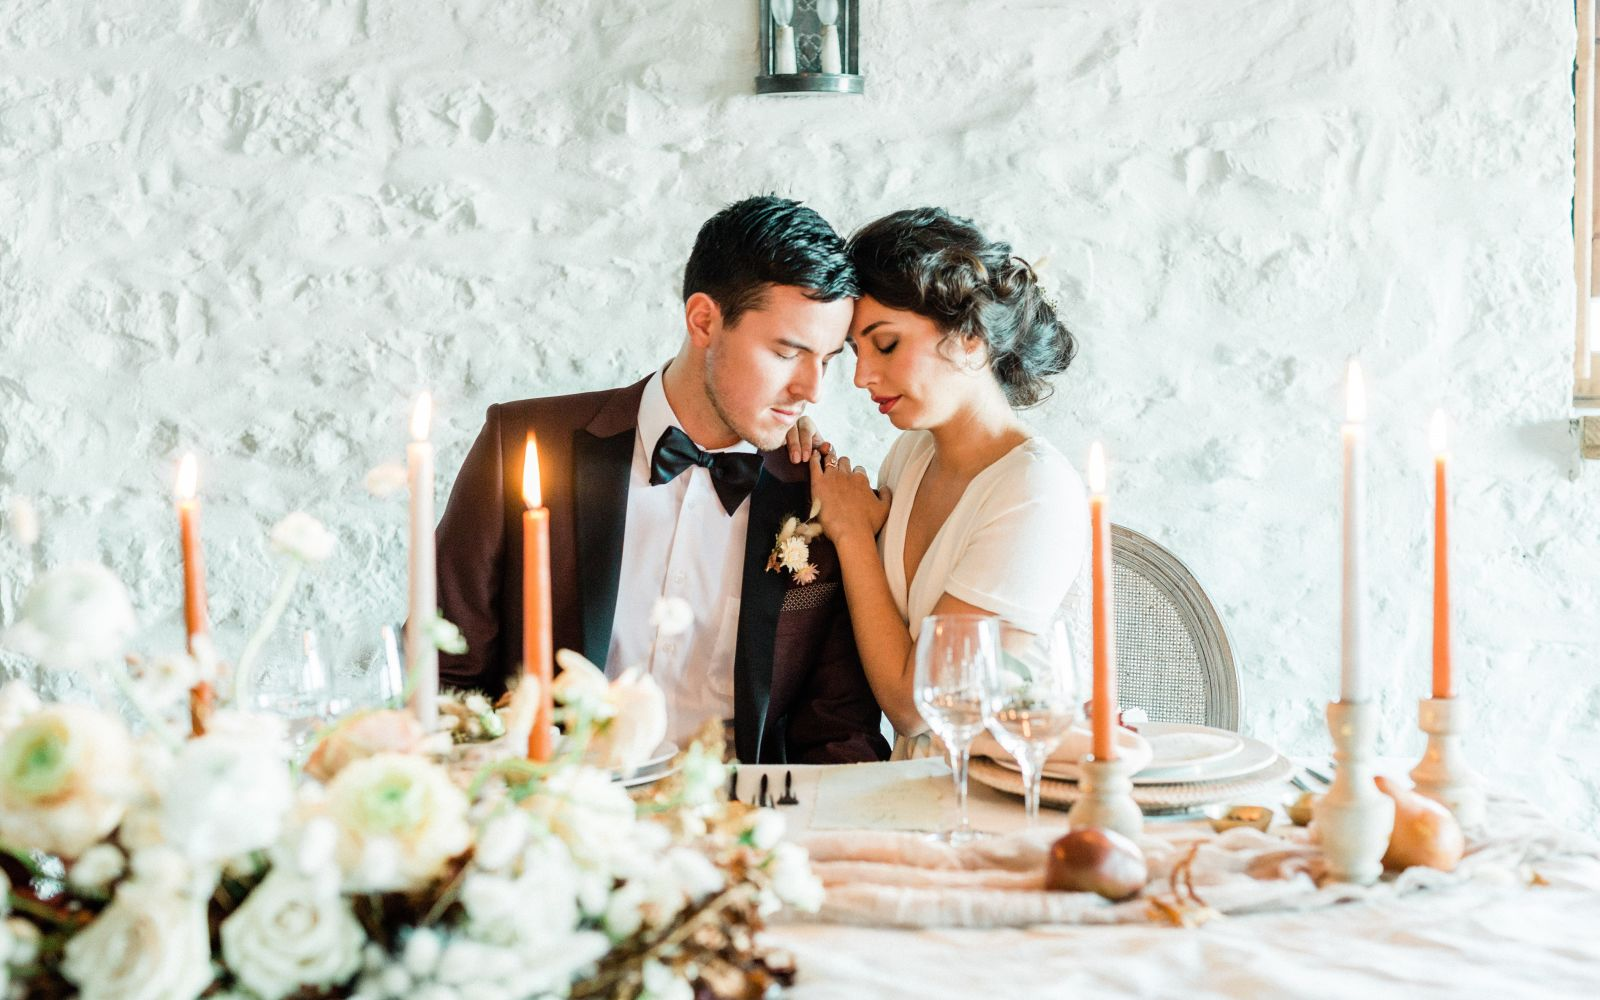 Wedding couple at Auberge Saint-Antoine